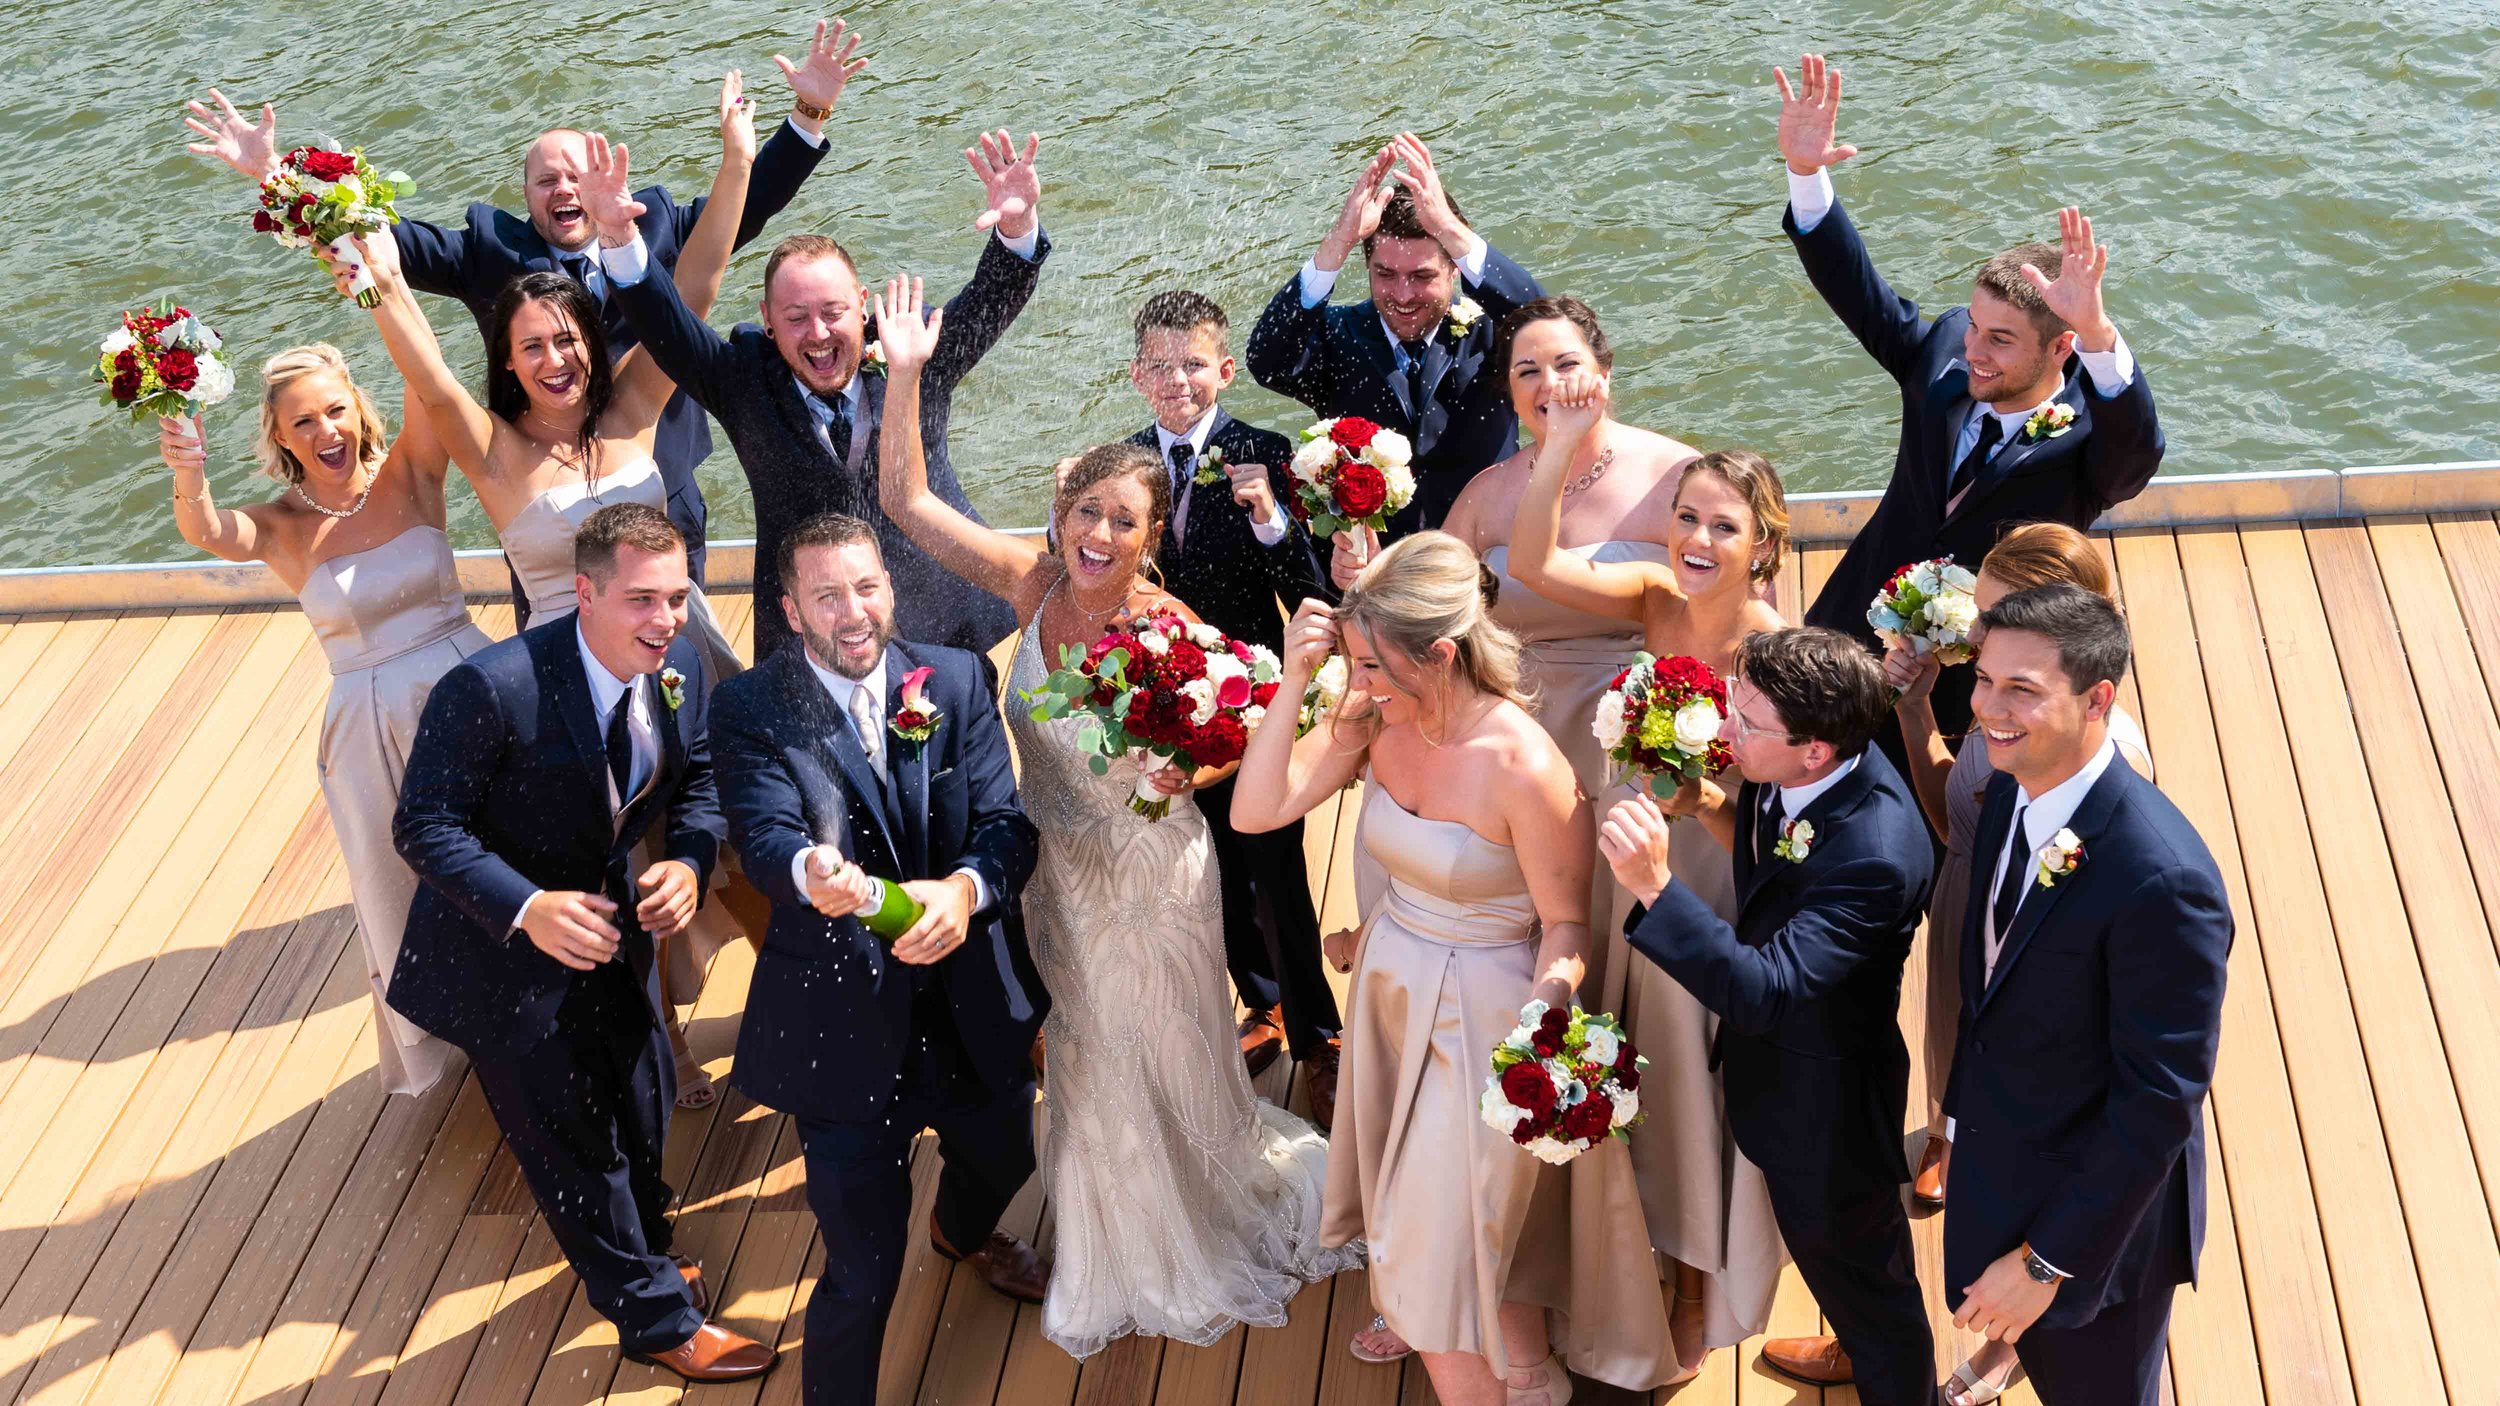 Bridal-Party-Portraits-by-River-Dock-6.jpg